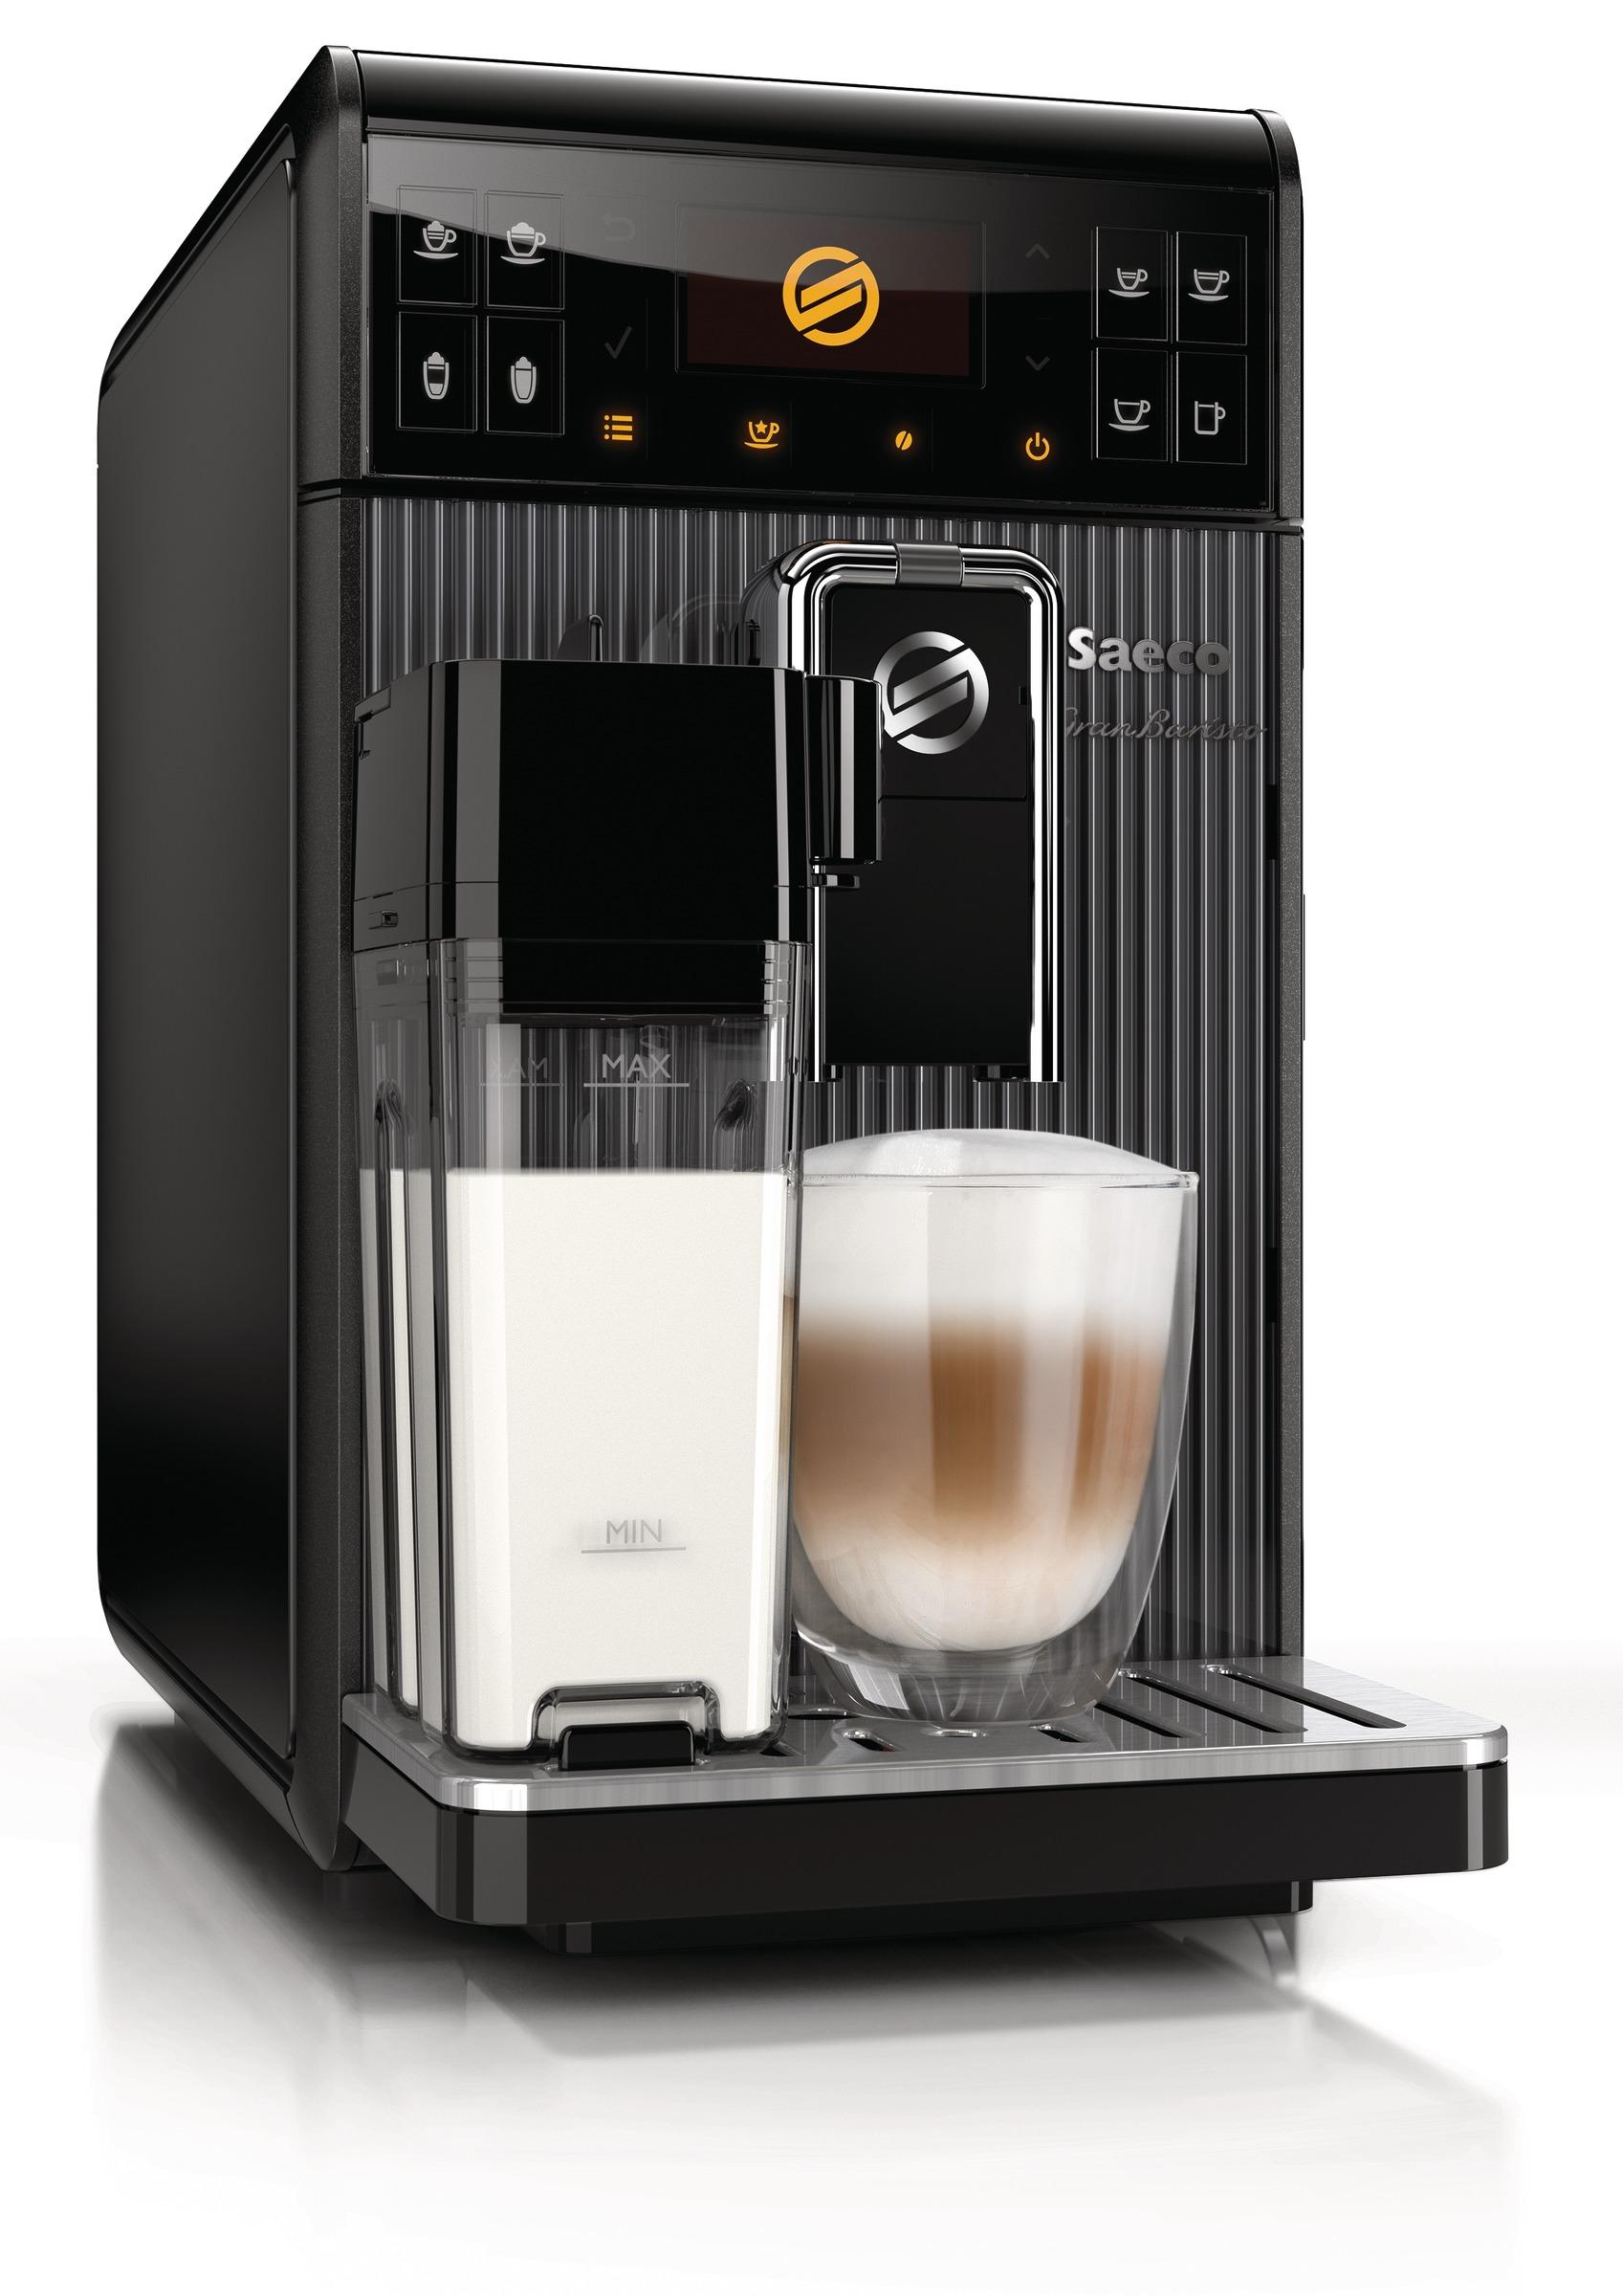 Amazon.com: Philips Saeco hd8964/47 Gran Baristo espresso ...